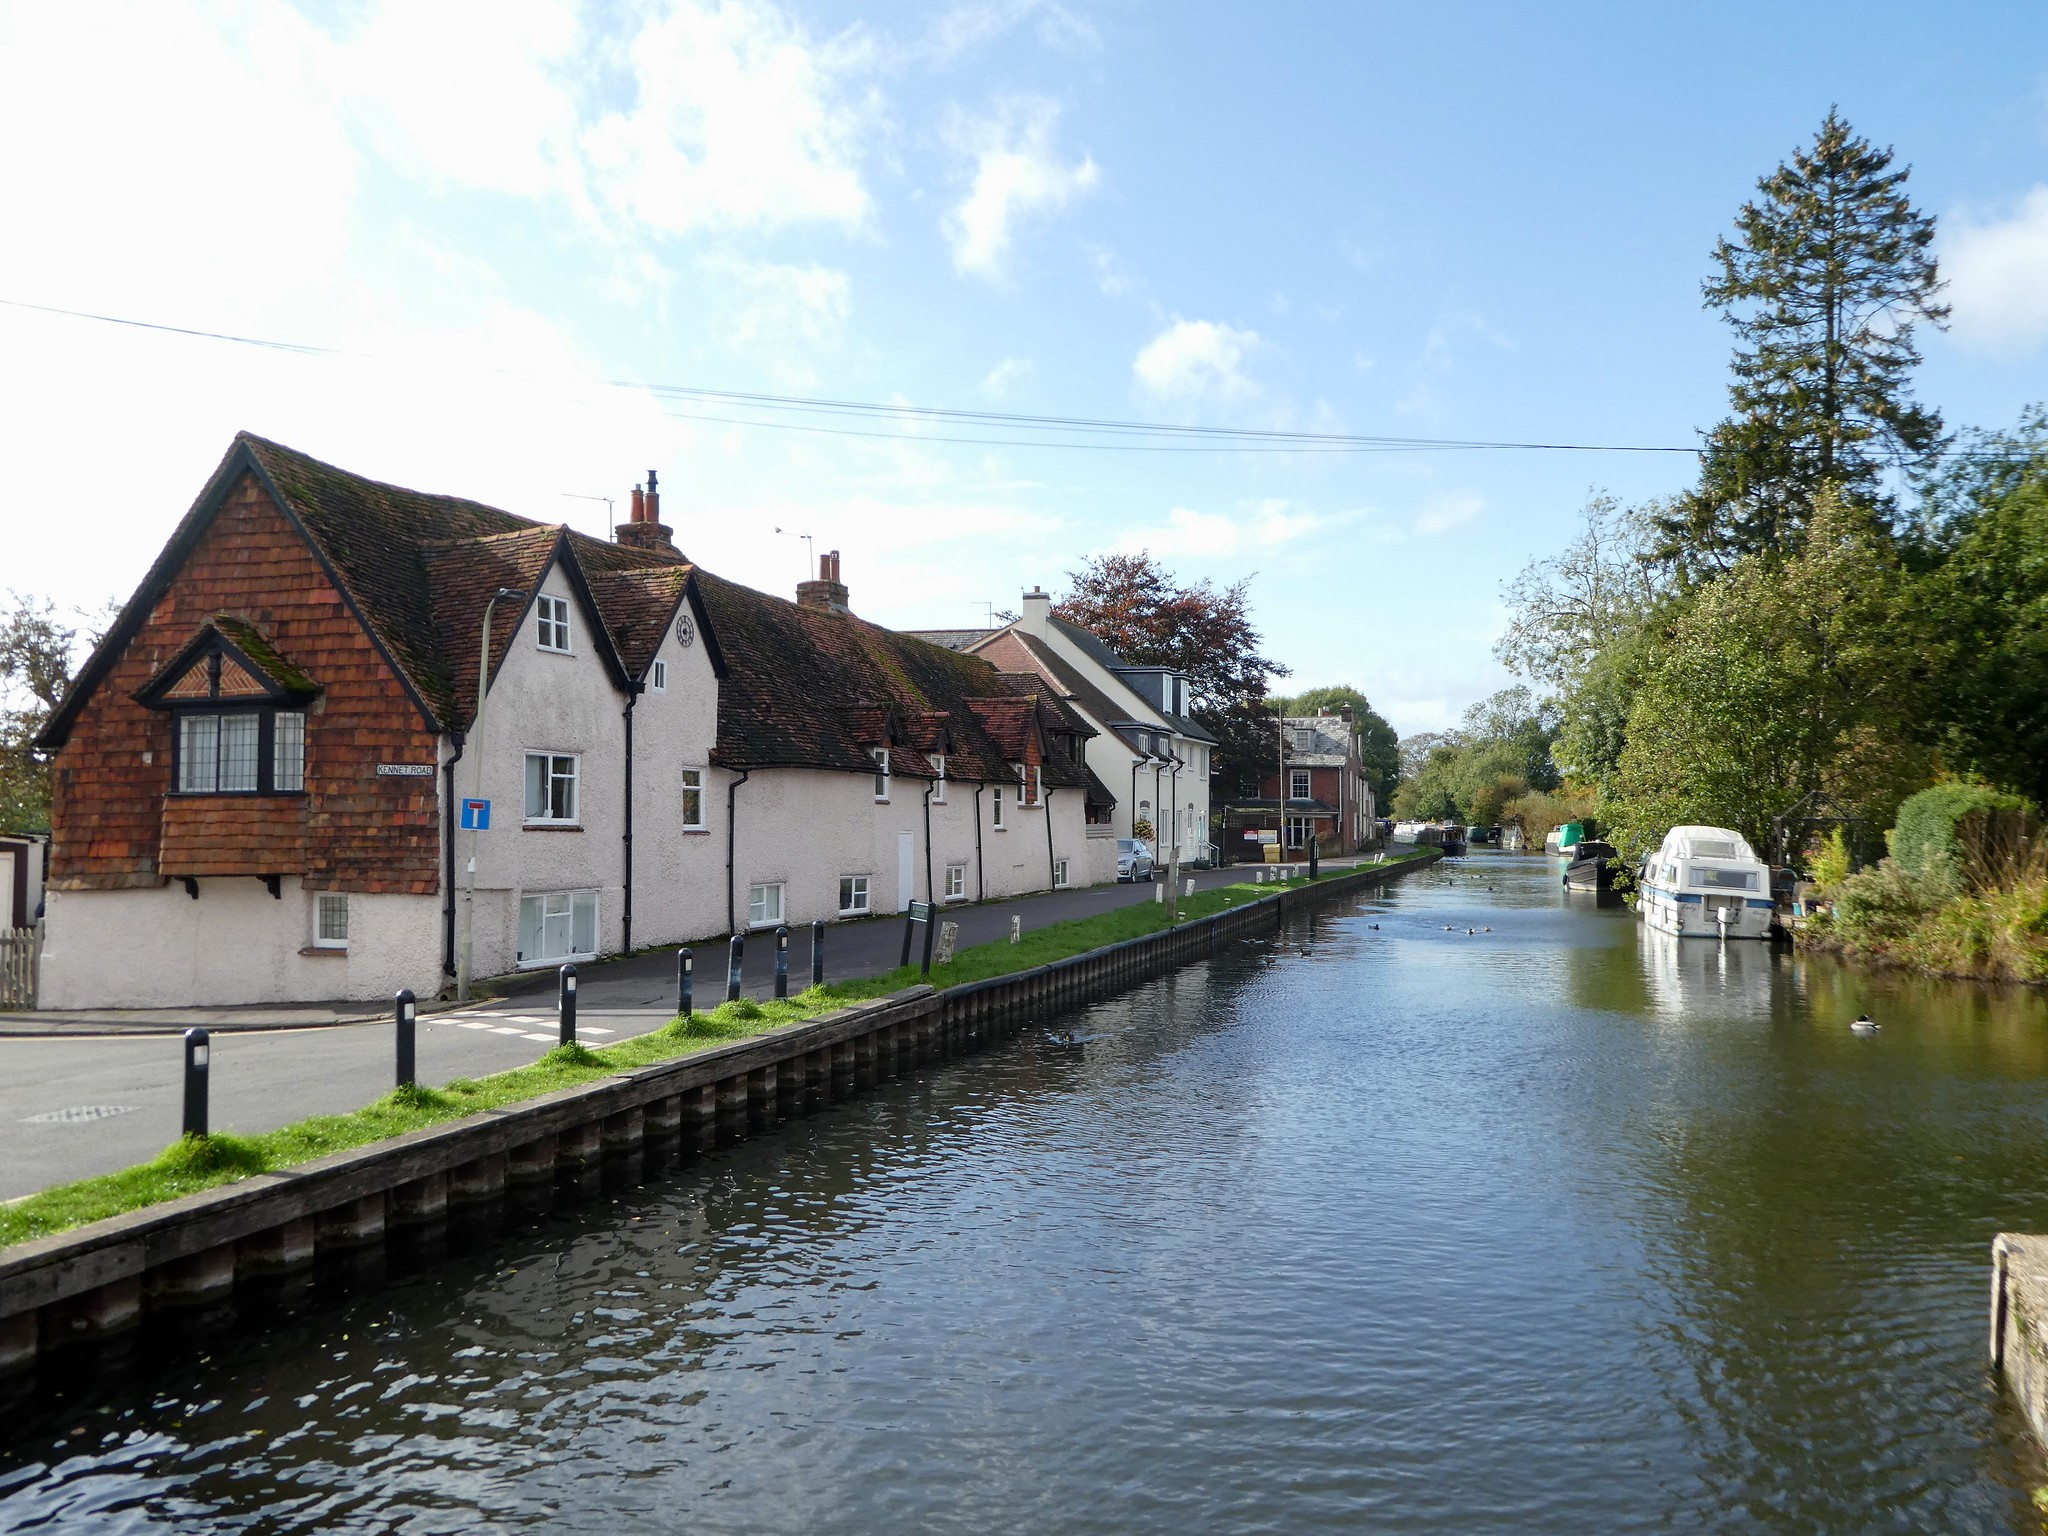 The Kennet and Avon Canal in Newbury, Berkshire